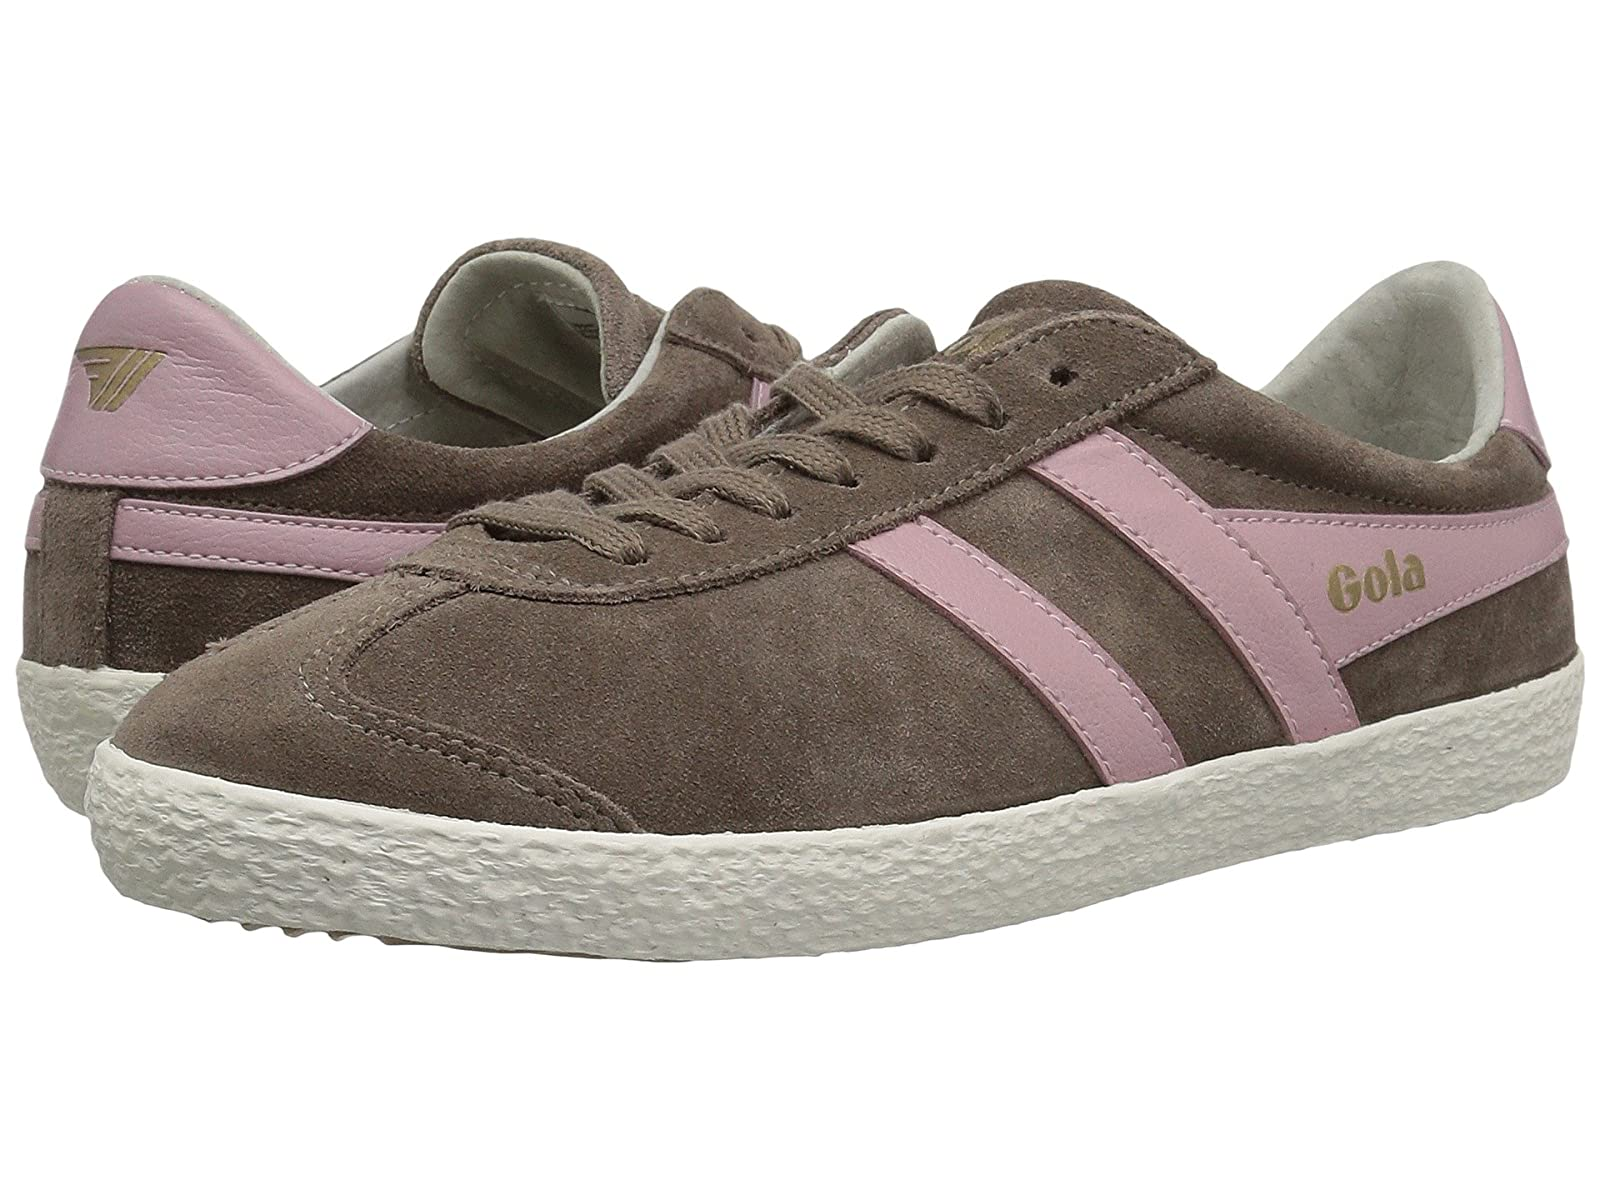 Gola SpecialistCheap and distinctive eye-catching shoes